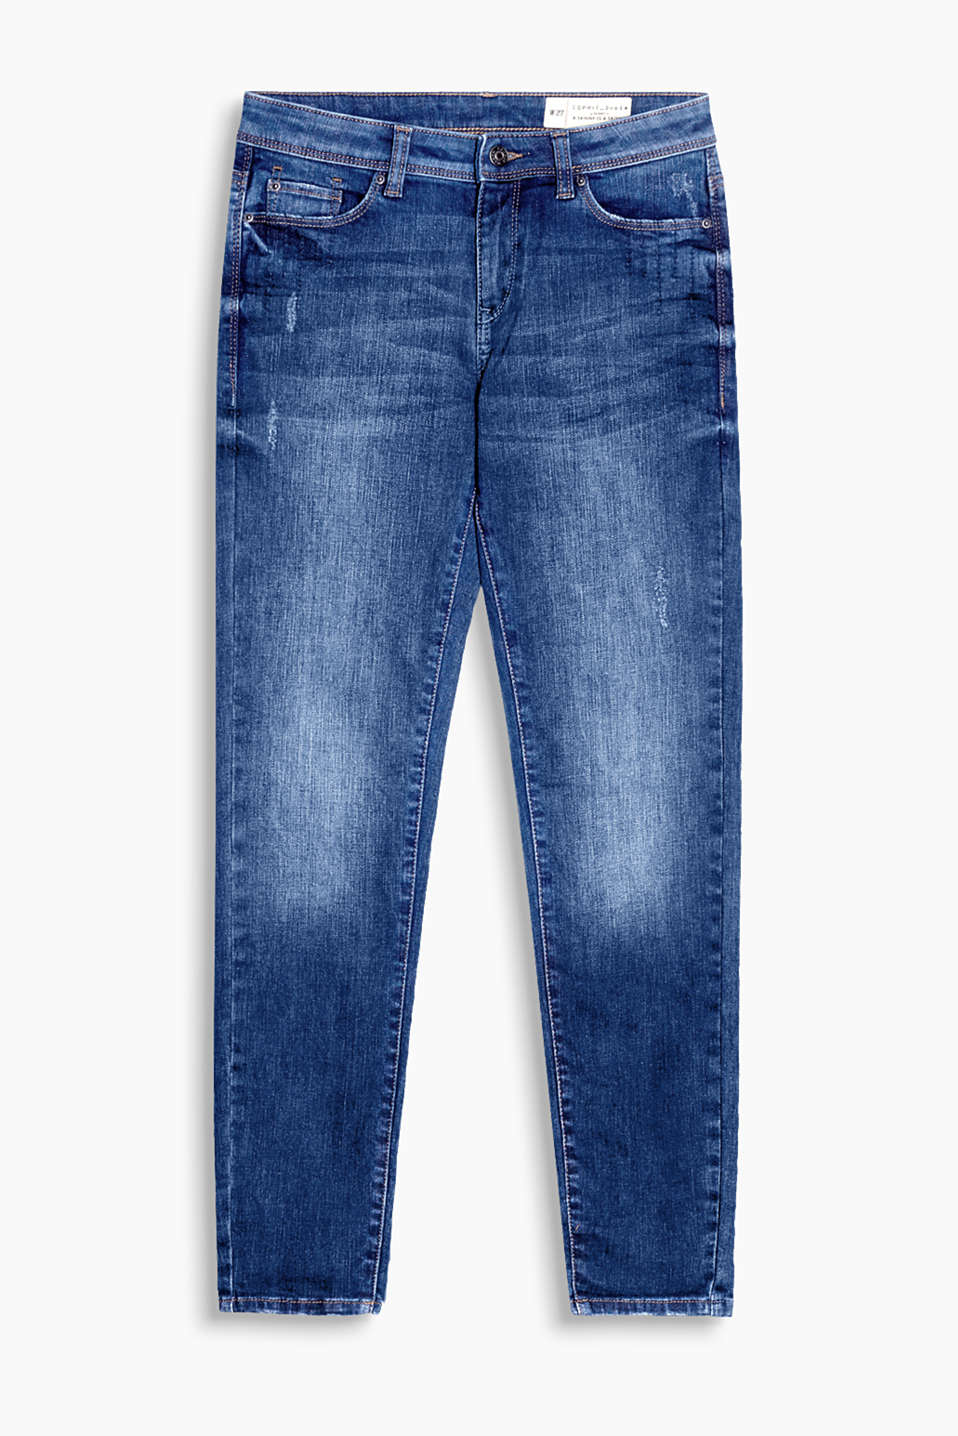 Verkürzte Stretch-Denim mit dezenten Used-Effekten